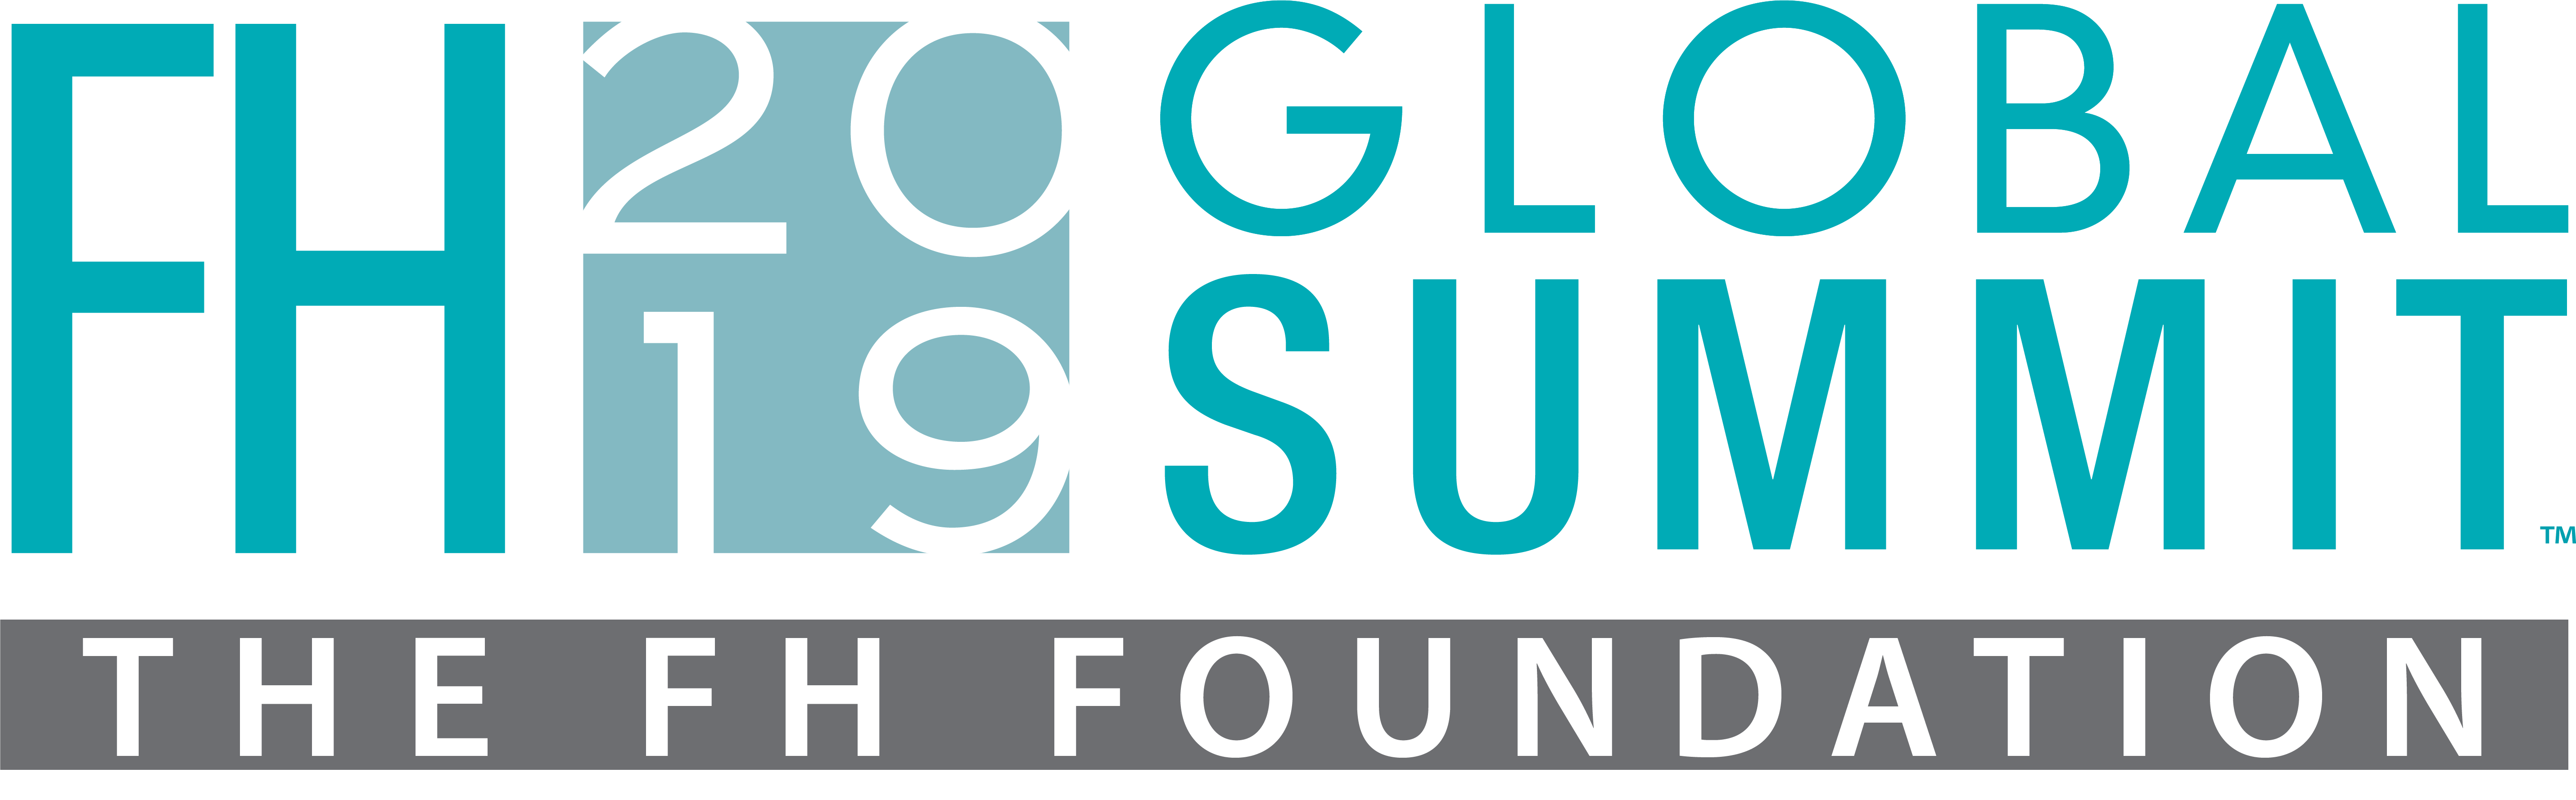 2019 FH Global Summit